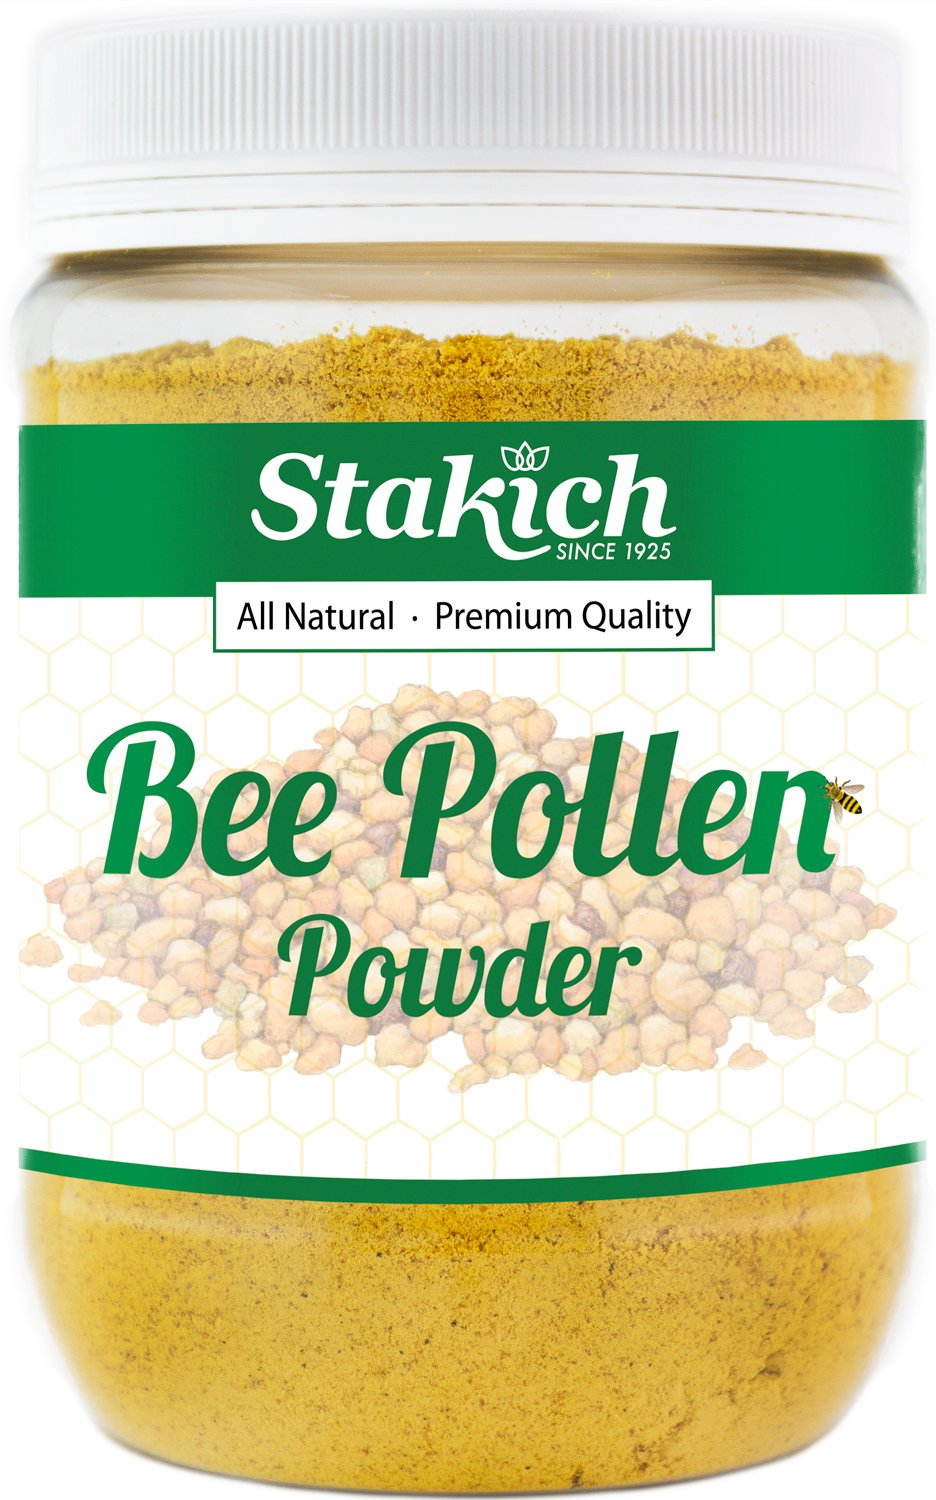 Stakich BEE POLLEN POWDER 10 lb - 100% Pure, Natural, Top Quality - by Stakich (Image #1)